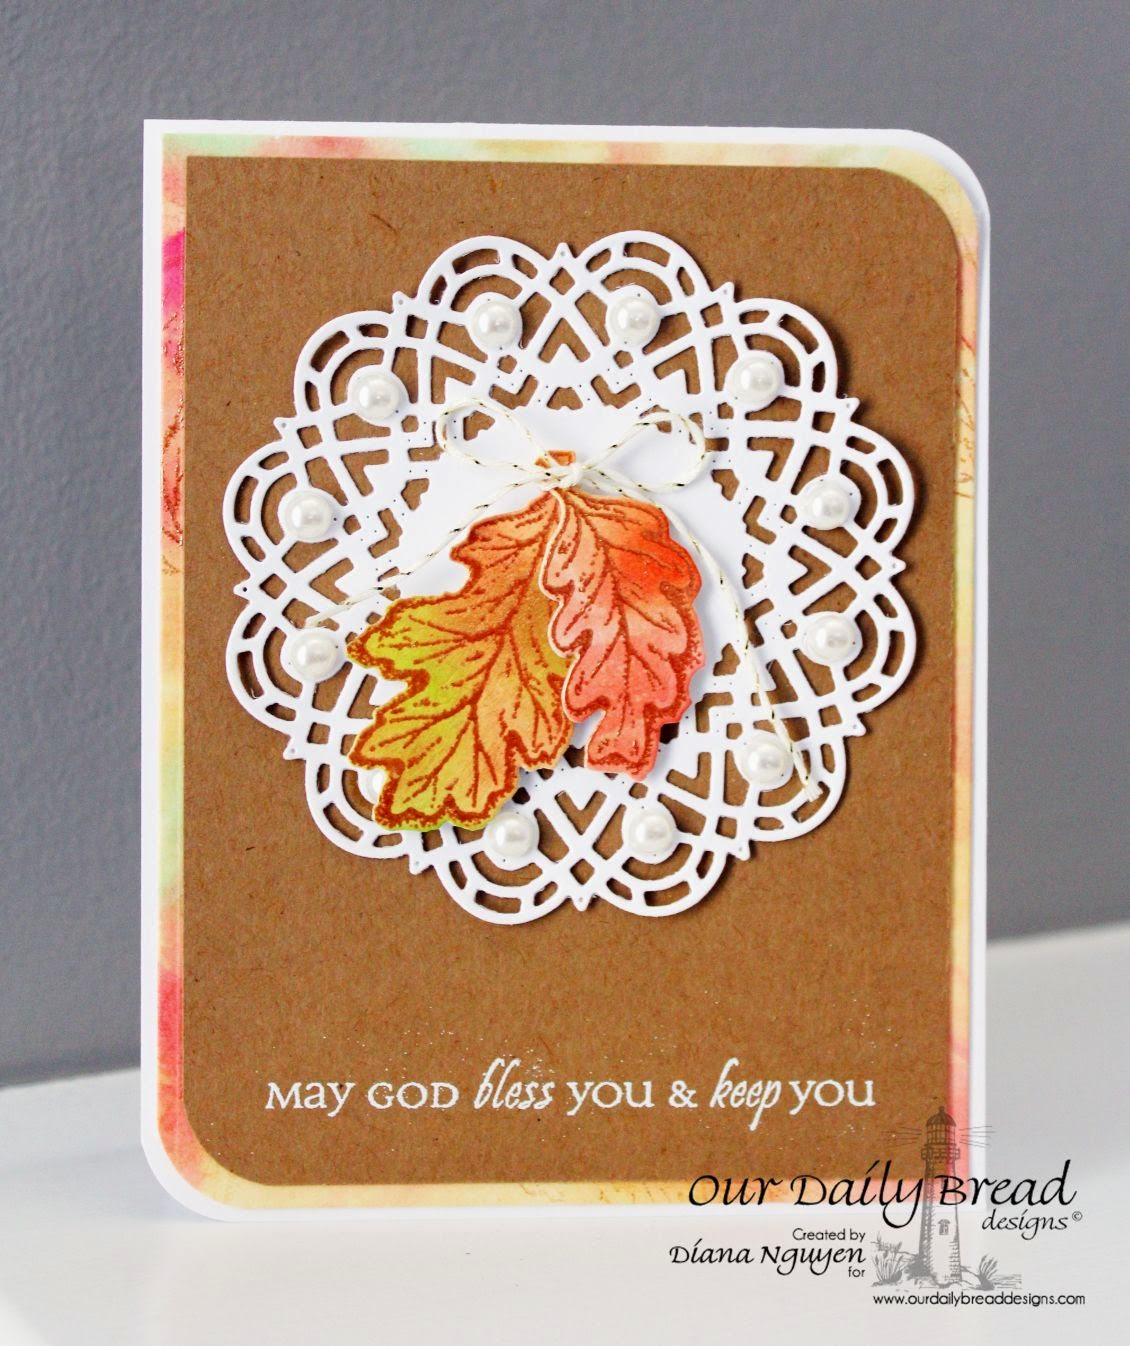 Our Daily Bread Designs, Autumn Blessings, All Occasions Sentiments, Doily die, Designed by Diana Nguyen